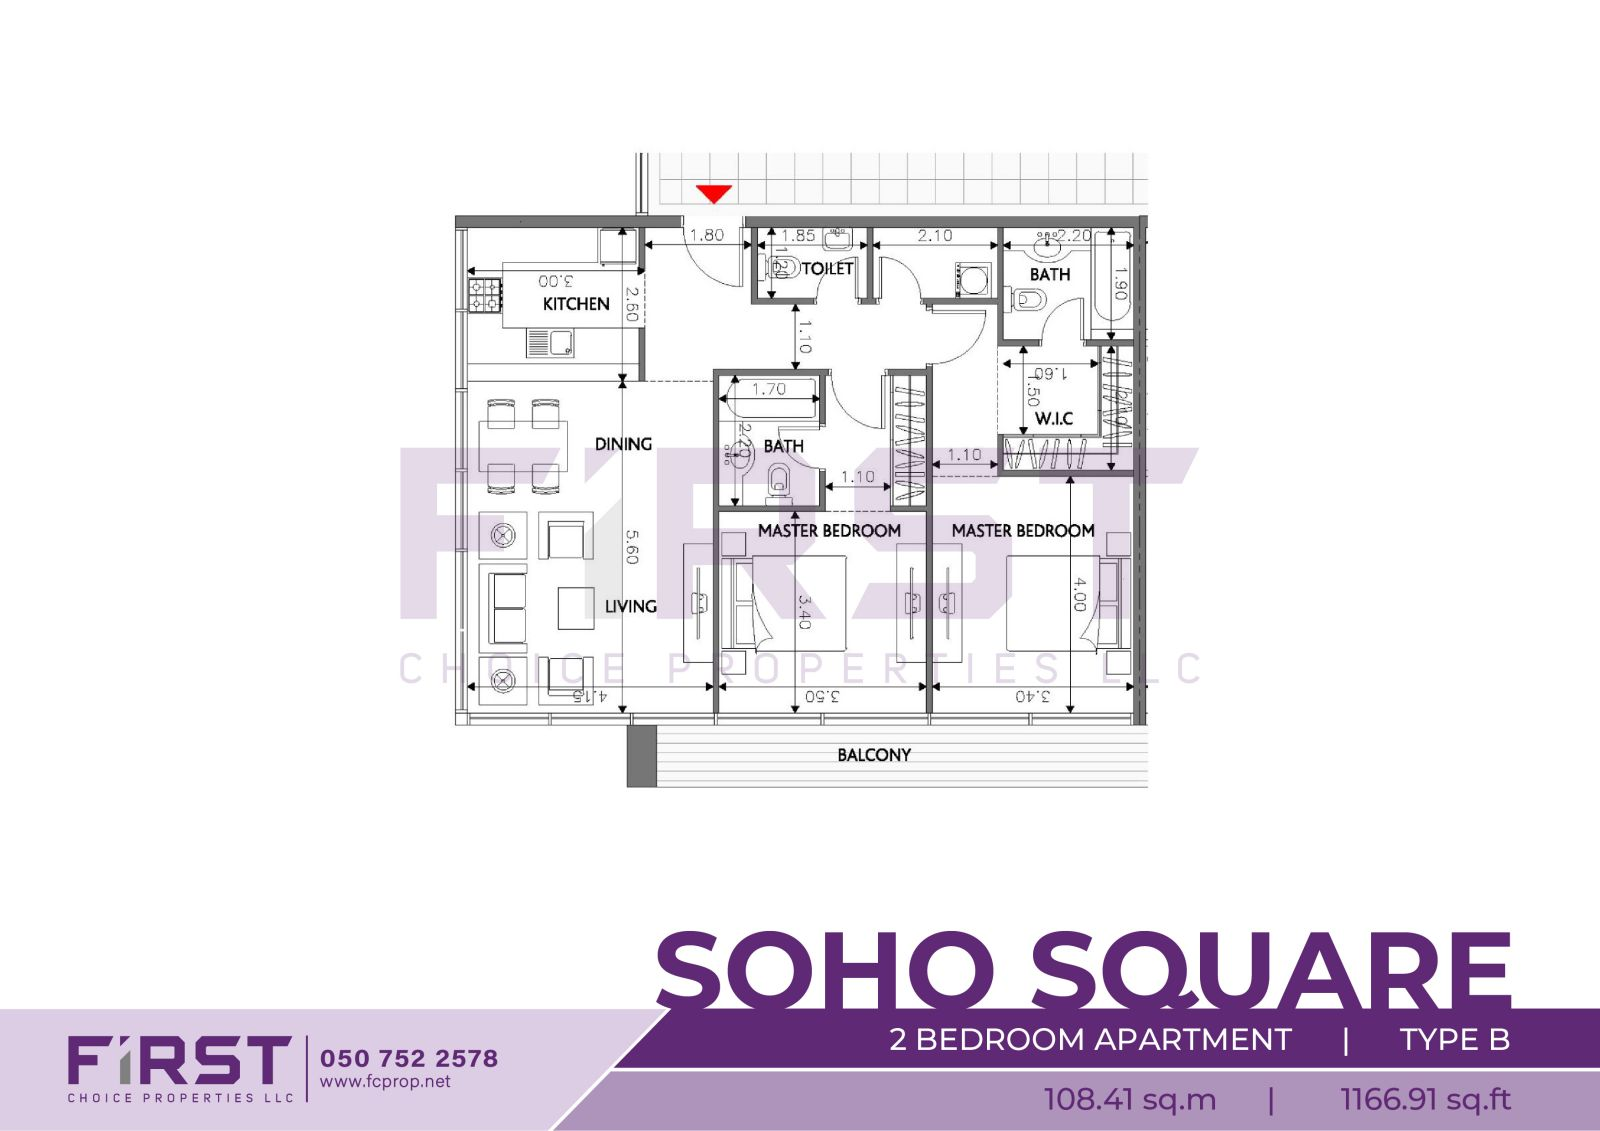 Floor Plan of 2 Bedroom Apartment Type B in Soho Square Saadiyat Island Abu Dhabi UAE 108.41 sq.m 1166.91 sq.ft .jpg